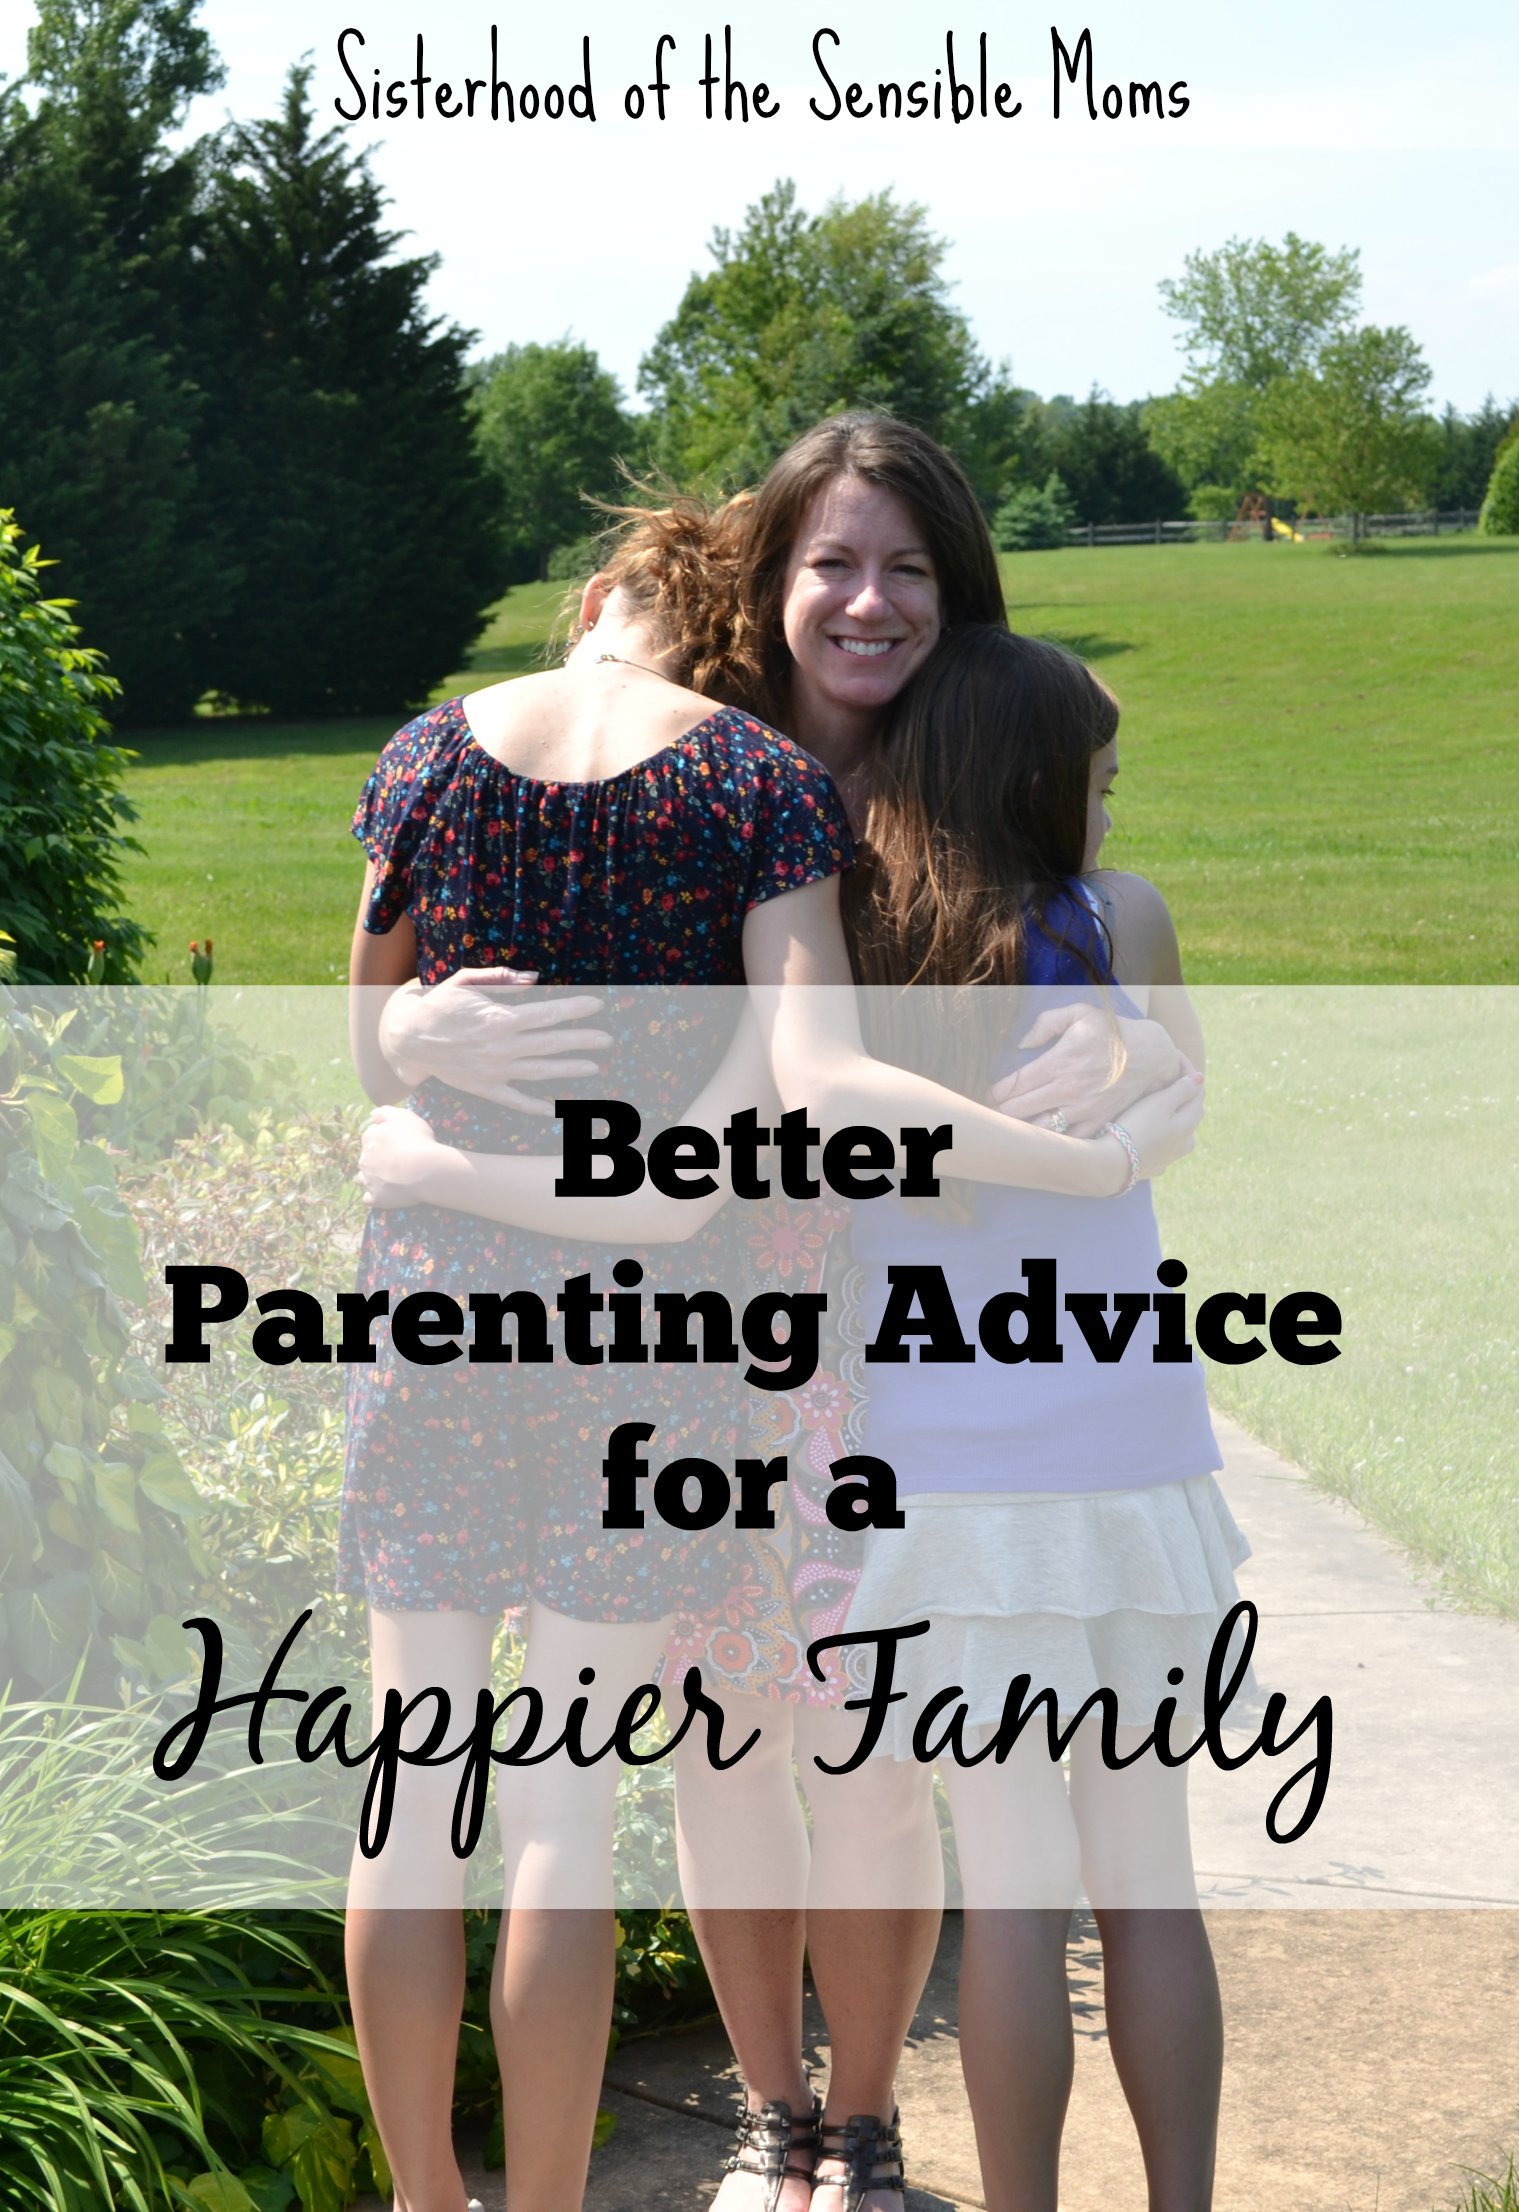 Better Parenting Advice for a Happier Family! Access to over 22 family experts with some superb parenting advice is just a click away! Sisterhood of the Sensible Moms